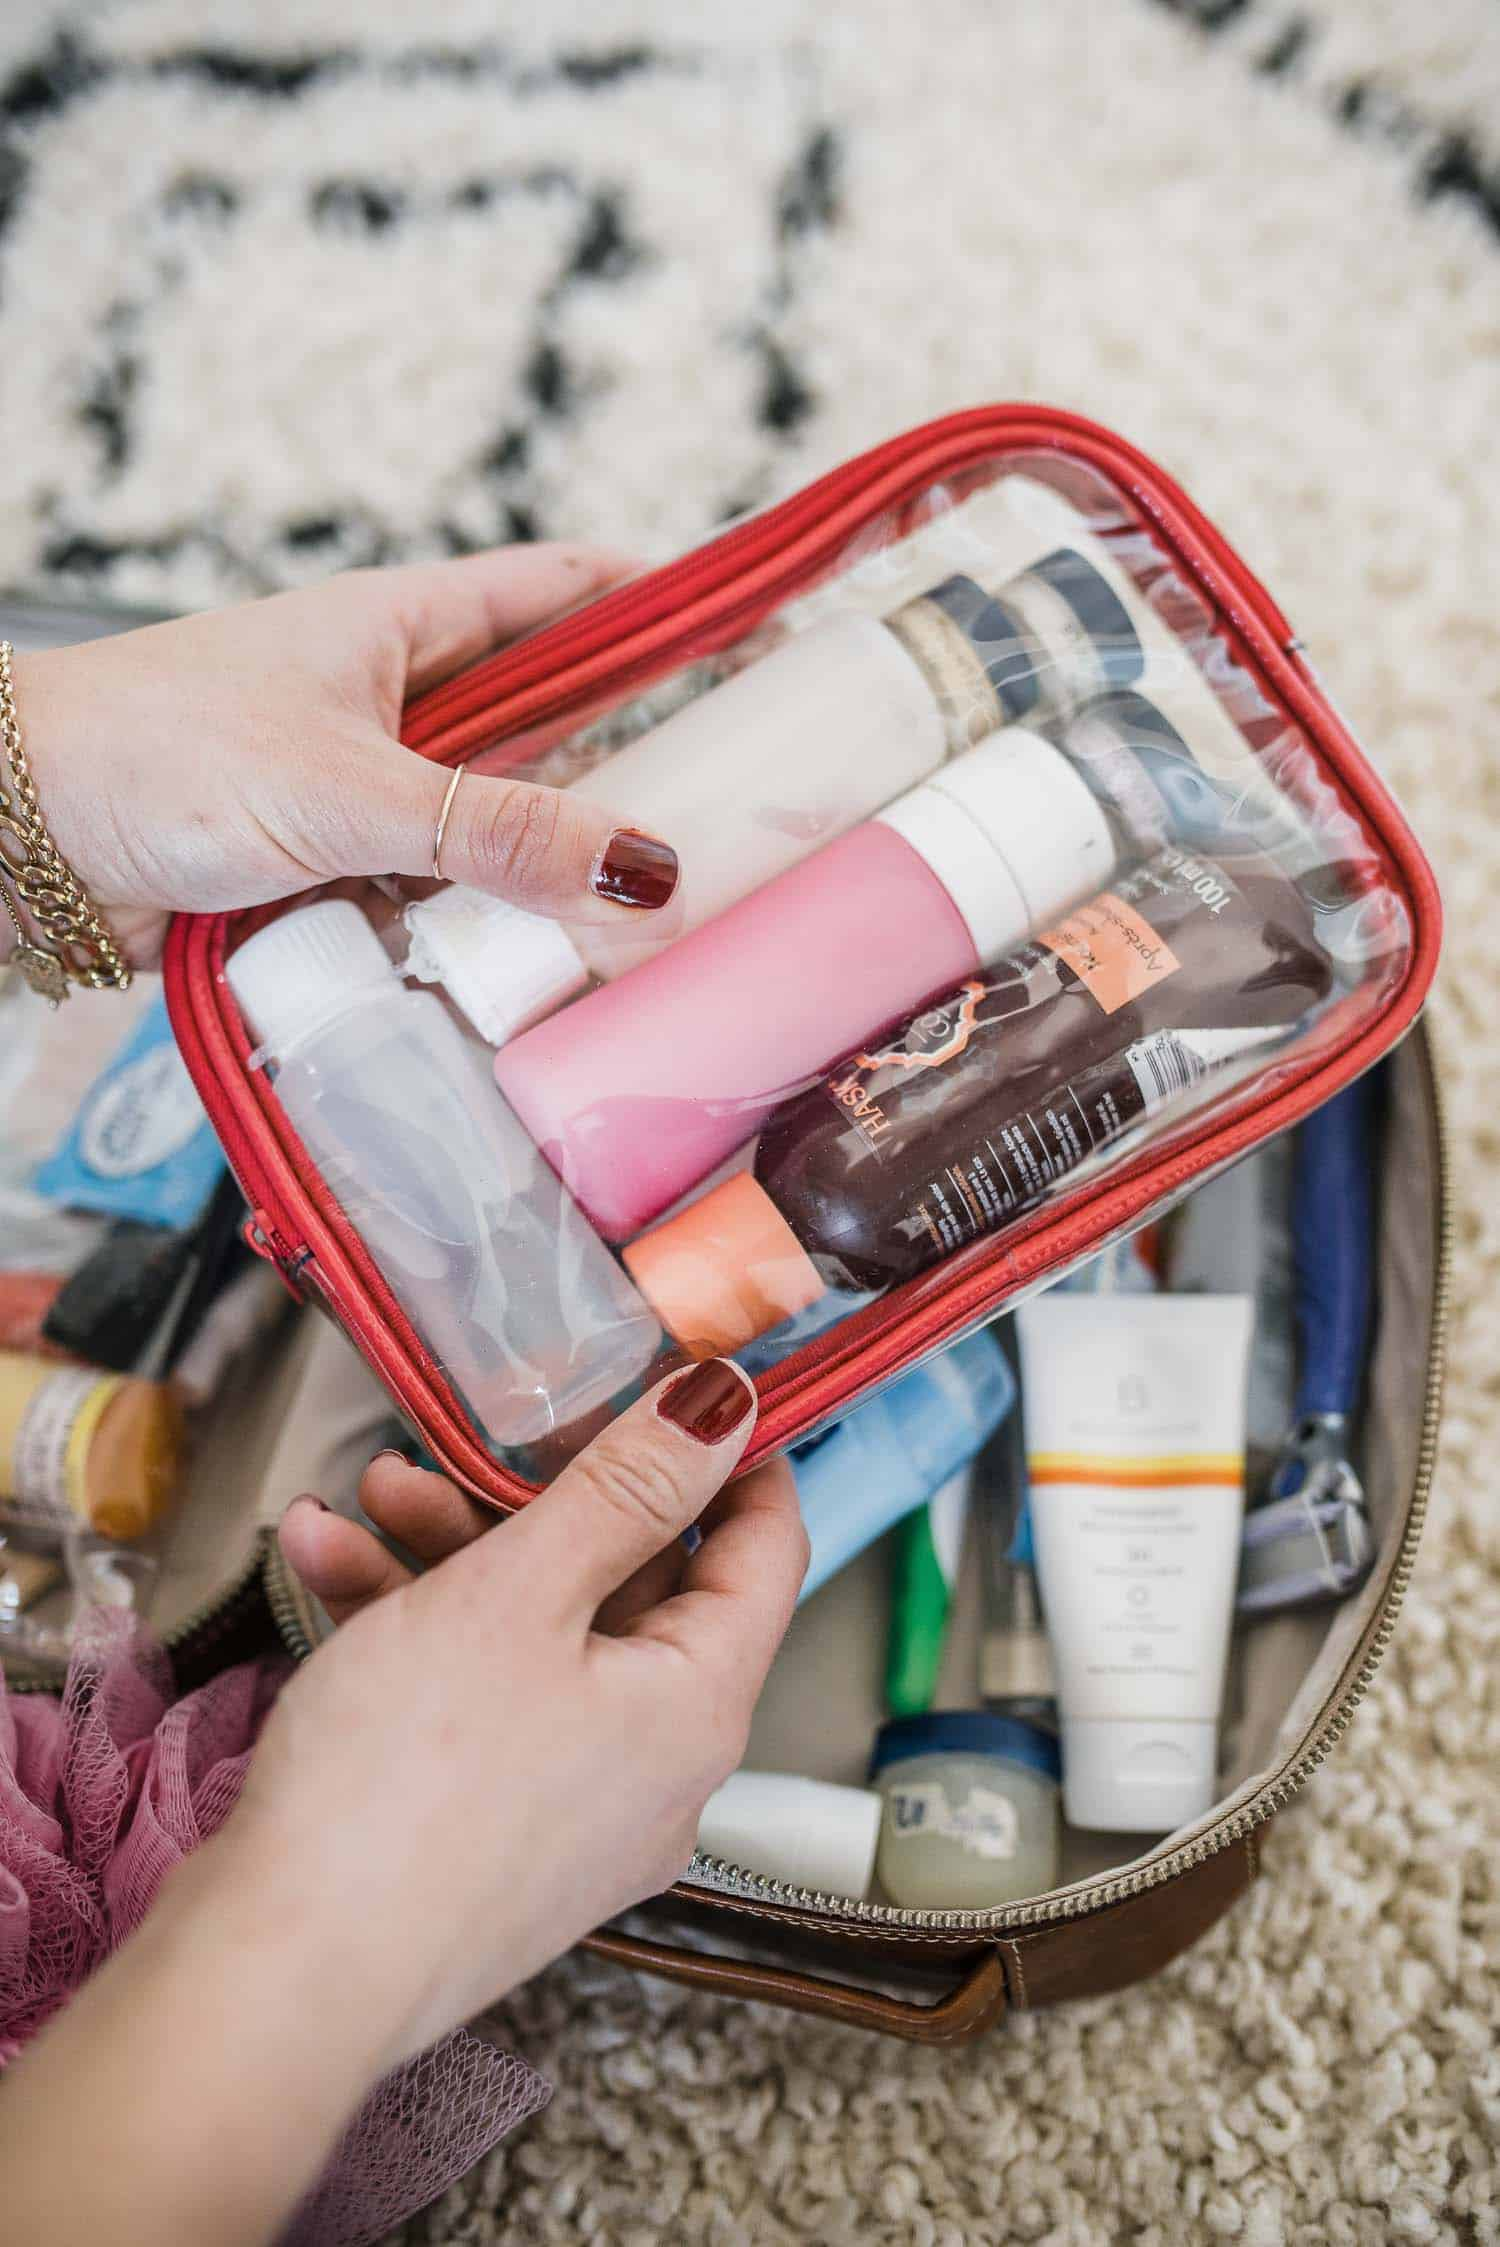 What To Keep In Your Toiletry Bag